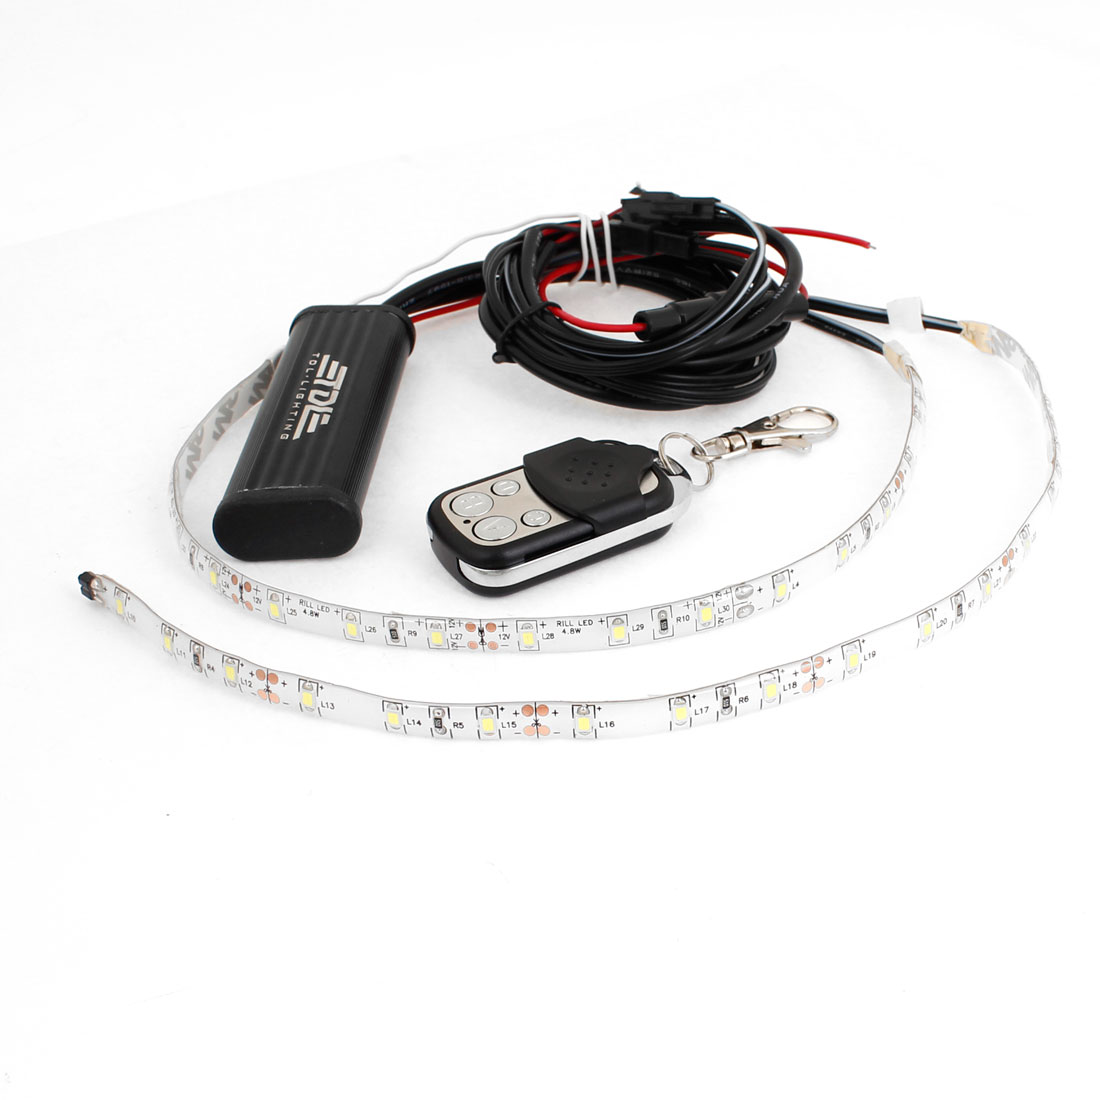 White 18 LED Bulb Flash Lights Controller w Remote Control for Car